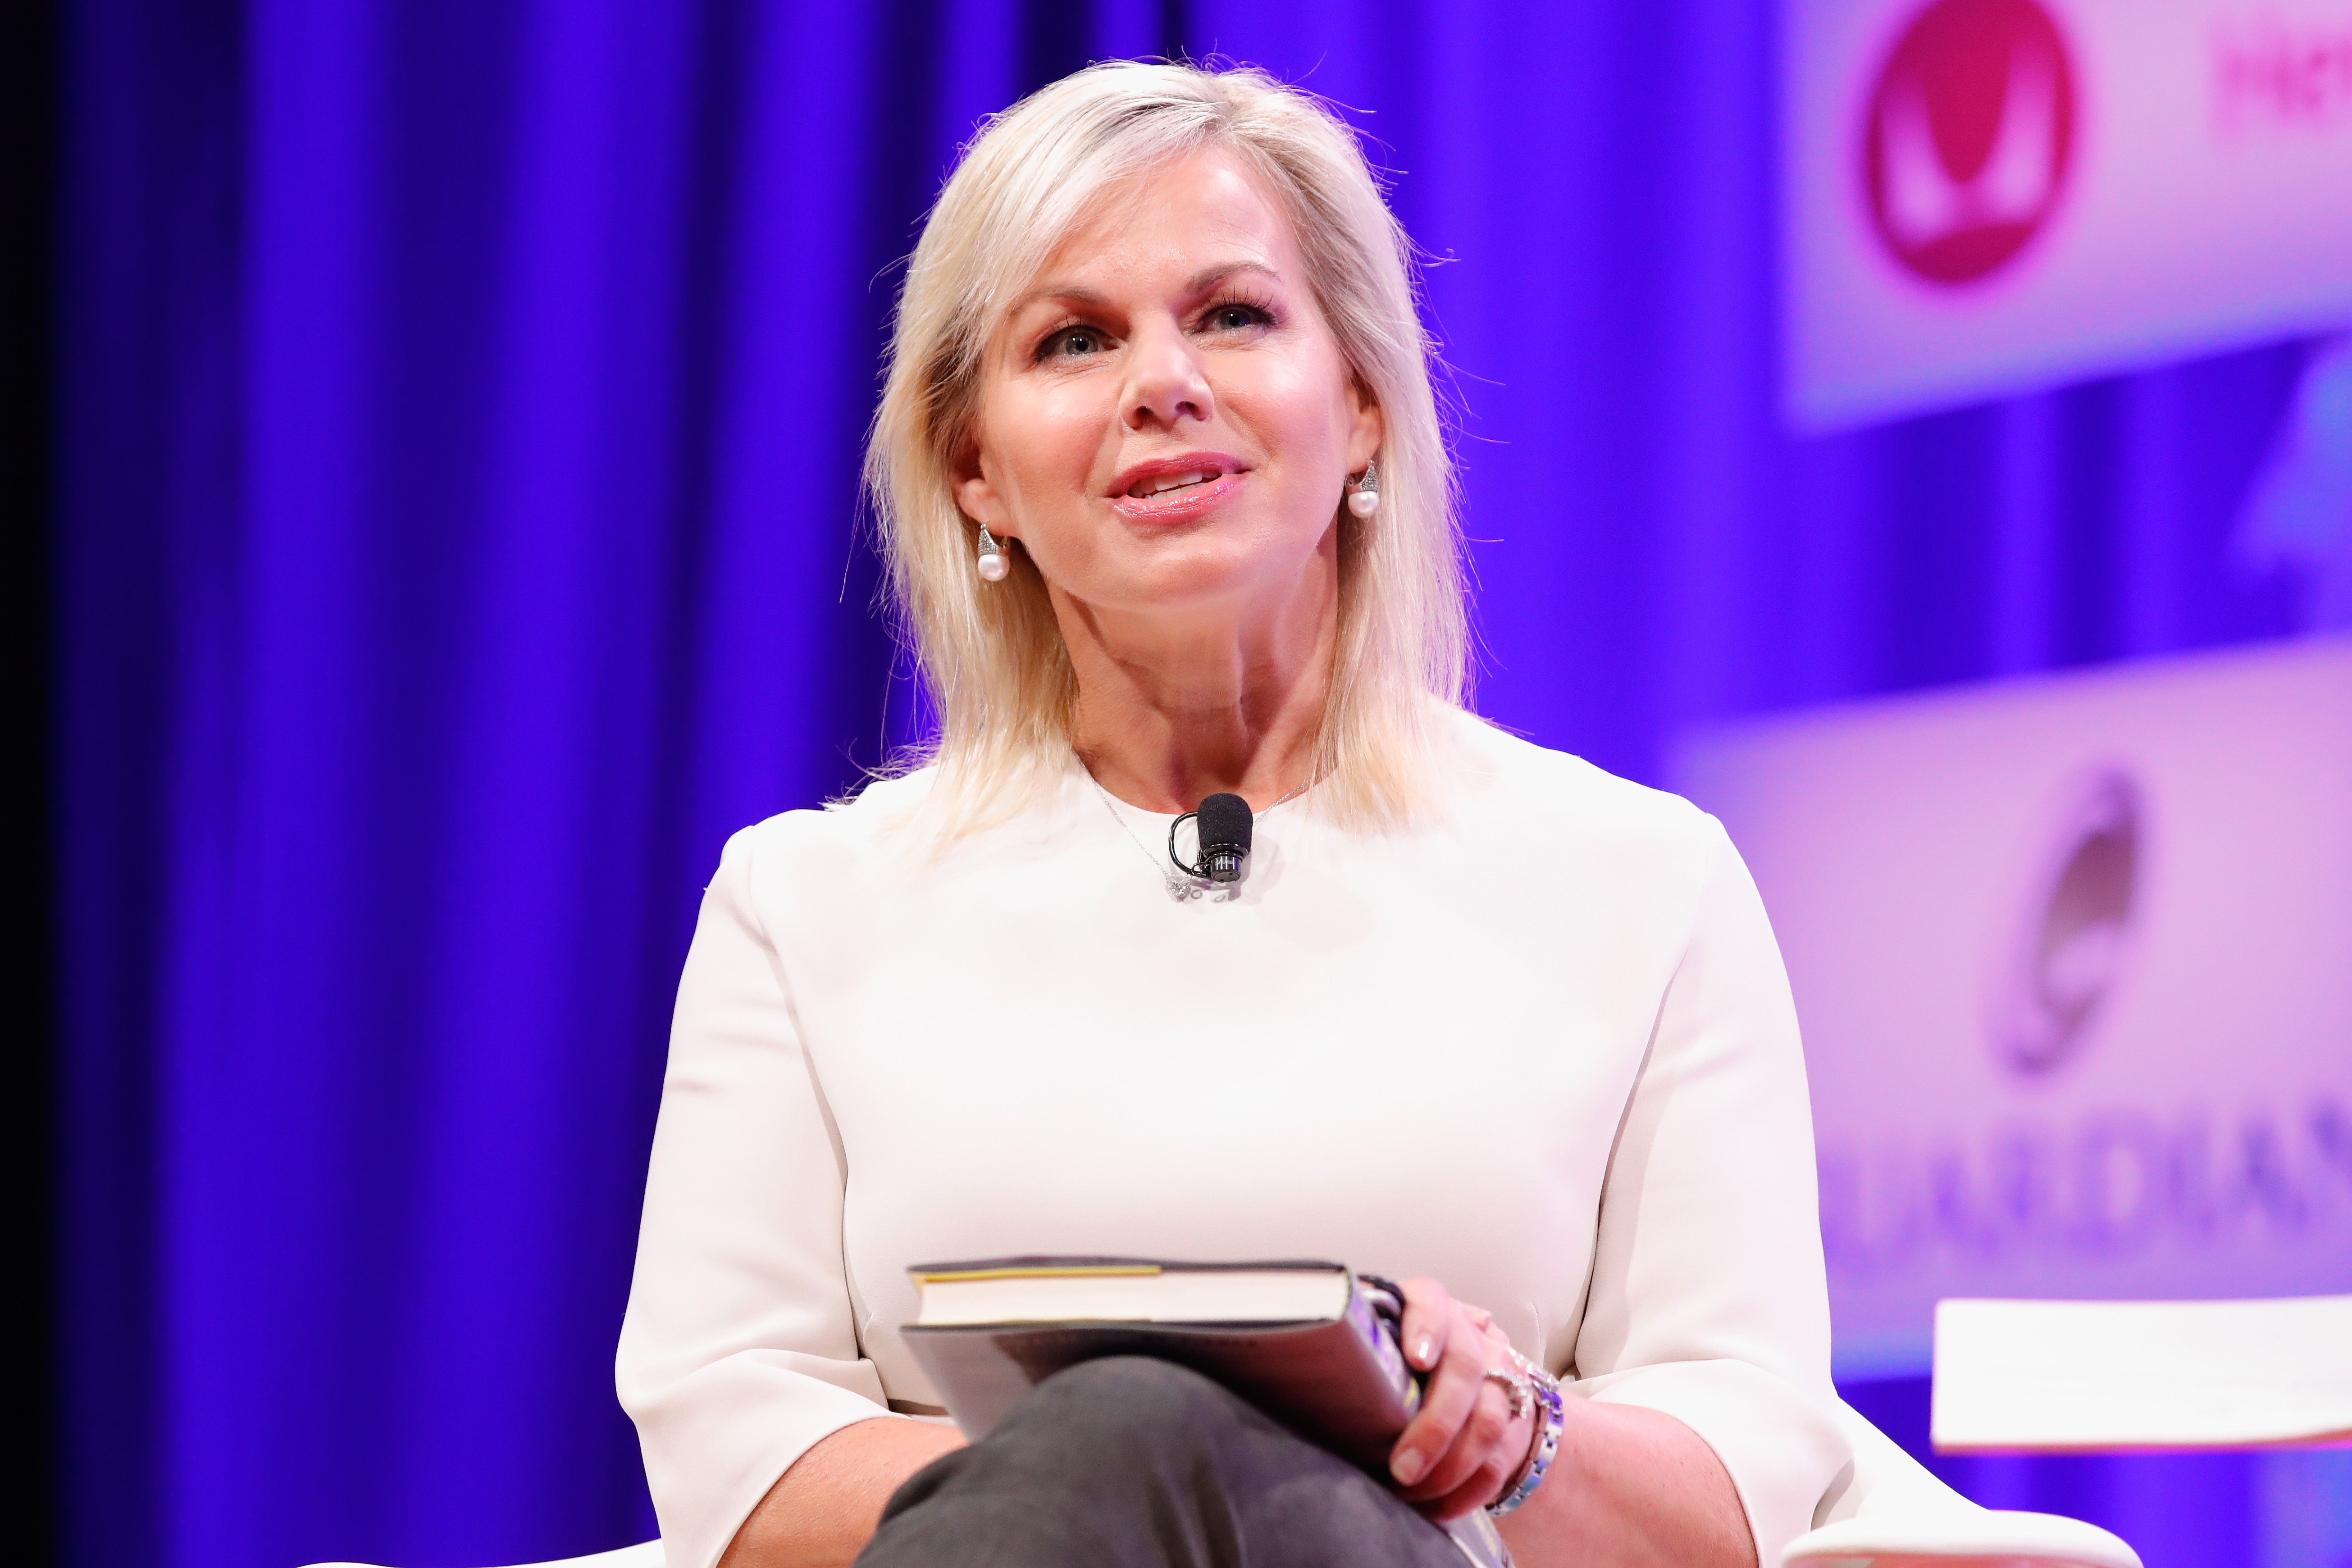 TV Journalist and Women's Empowerment Advocate Gretchen Carlson at the Fortune Most Powerful Women Summit - Day 3 on Oct. 11, 2017 in Washington, DC.